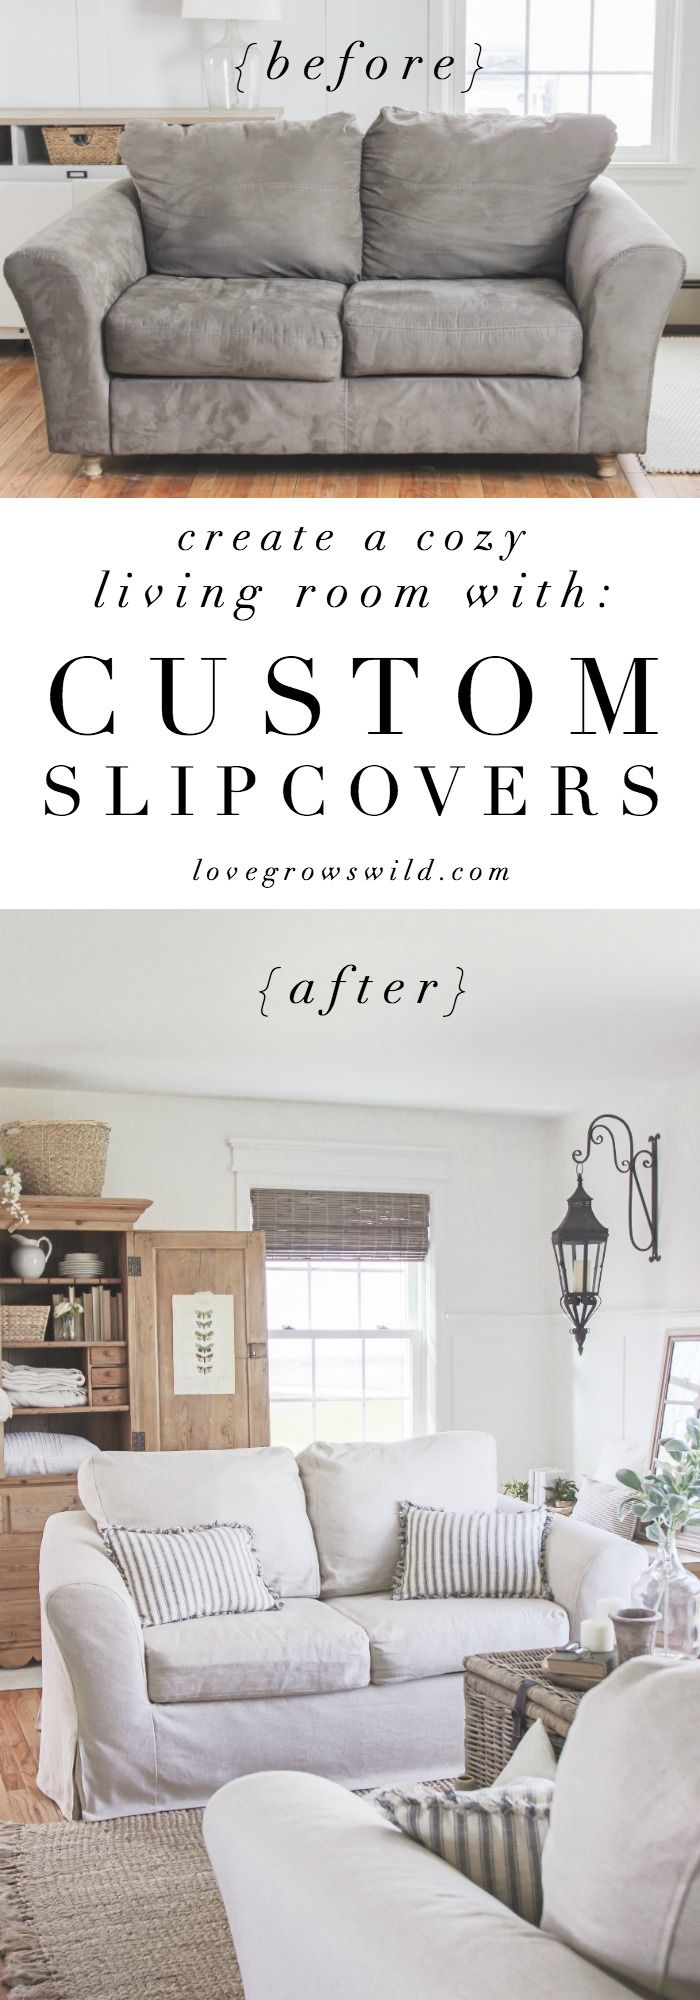 Living Room Slipcovers - A Comfort Works Review | Pinterest ...